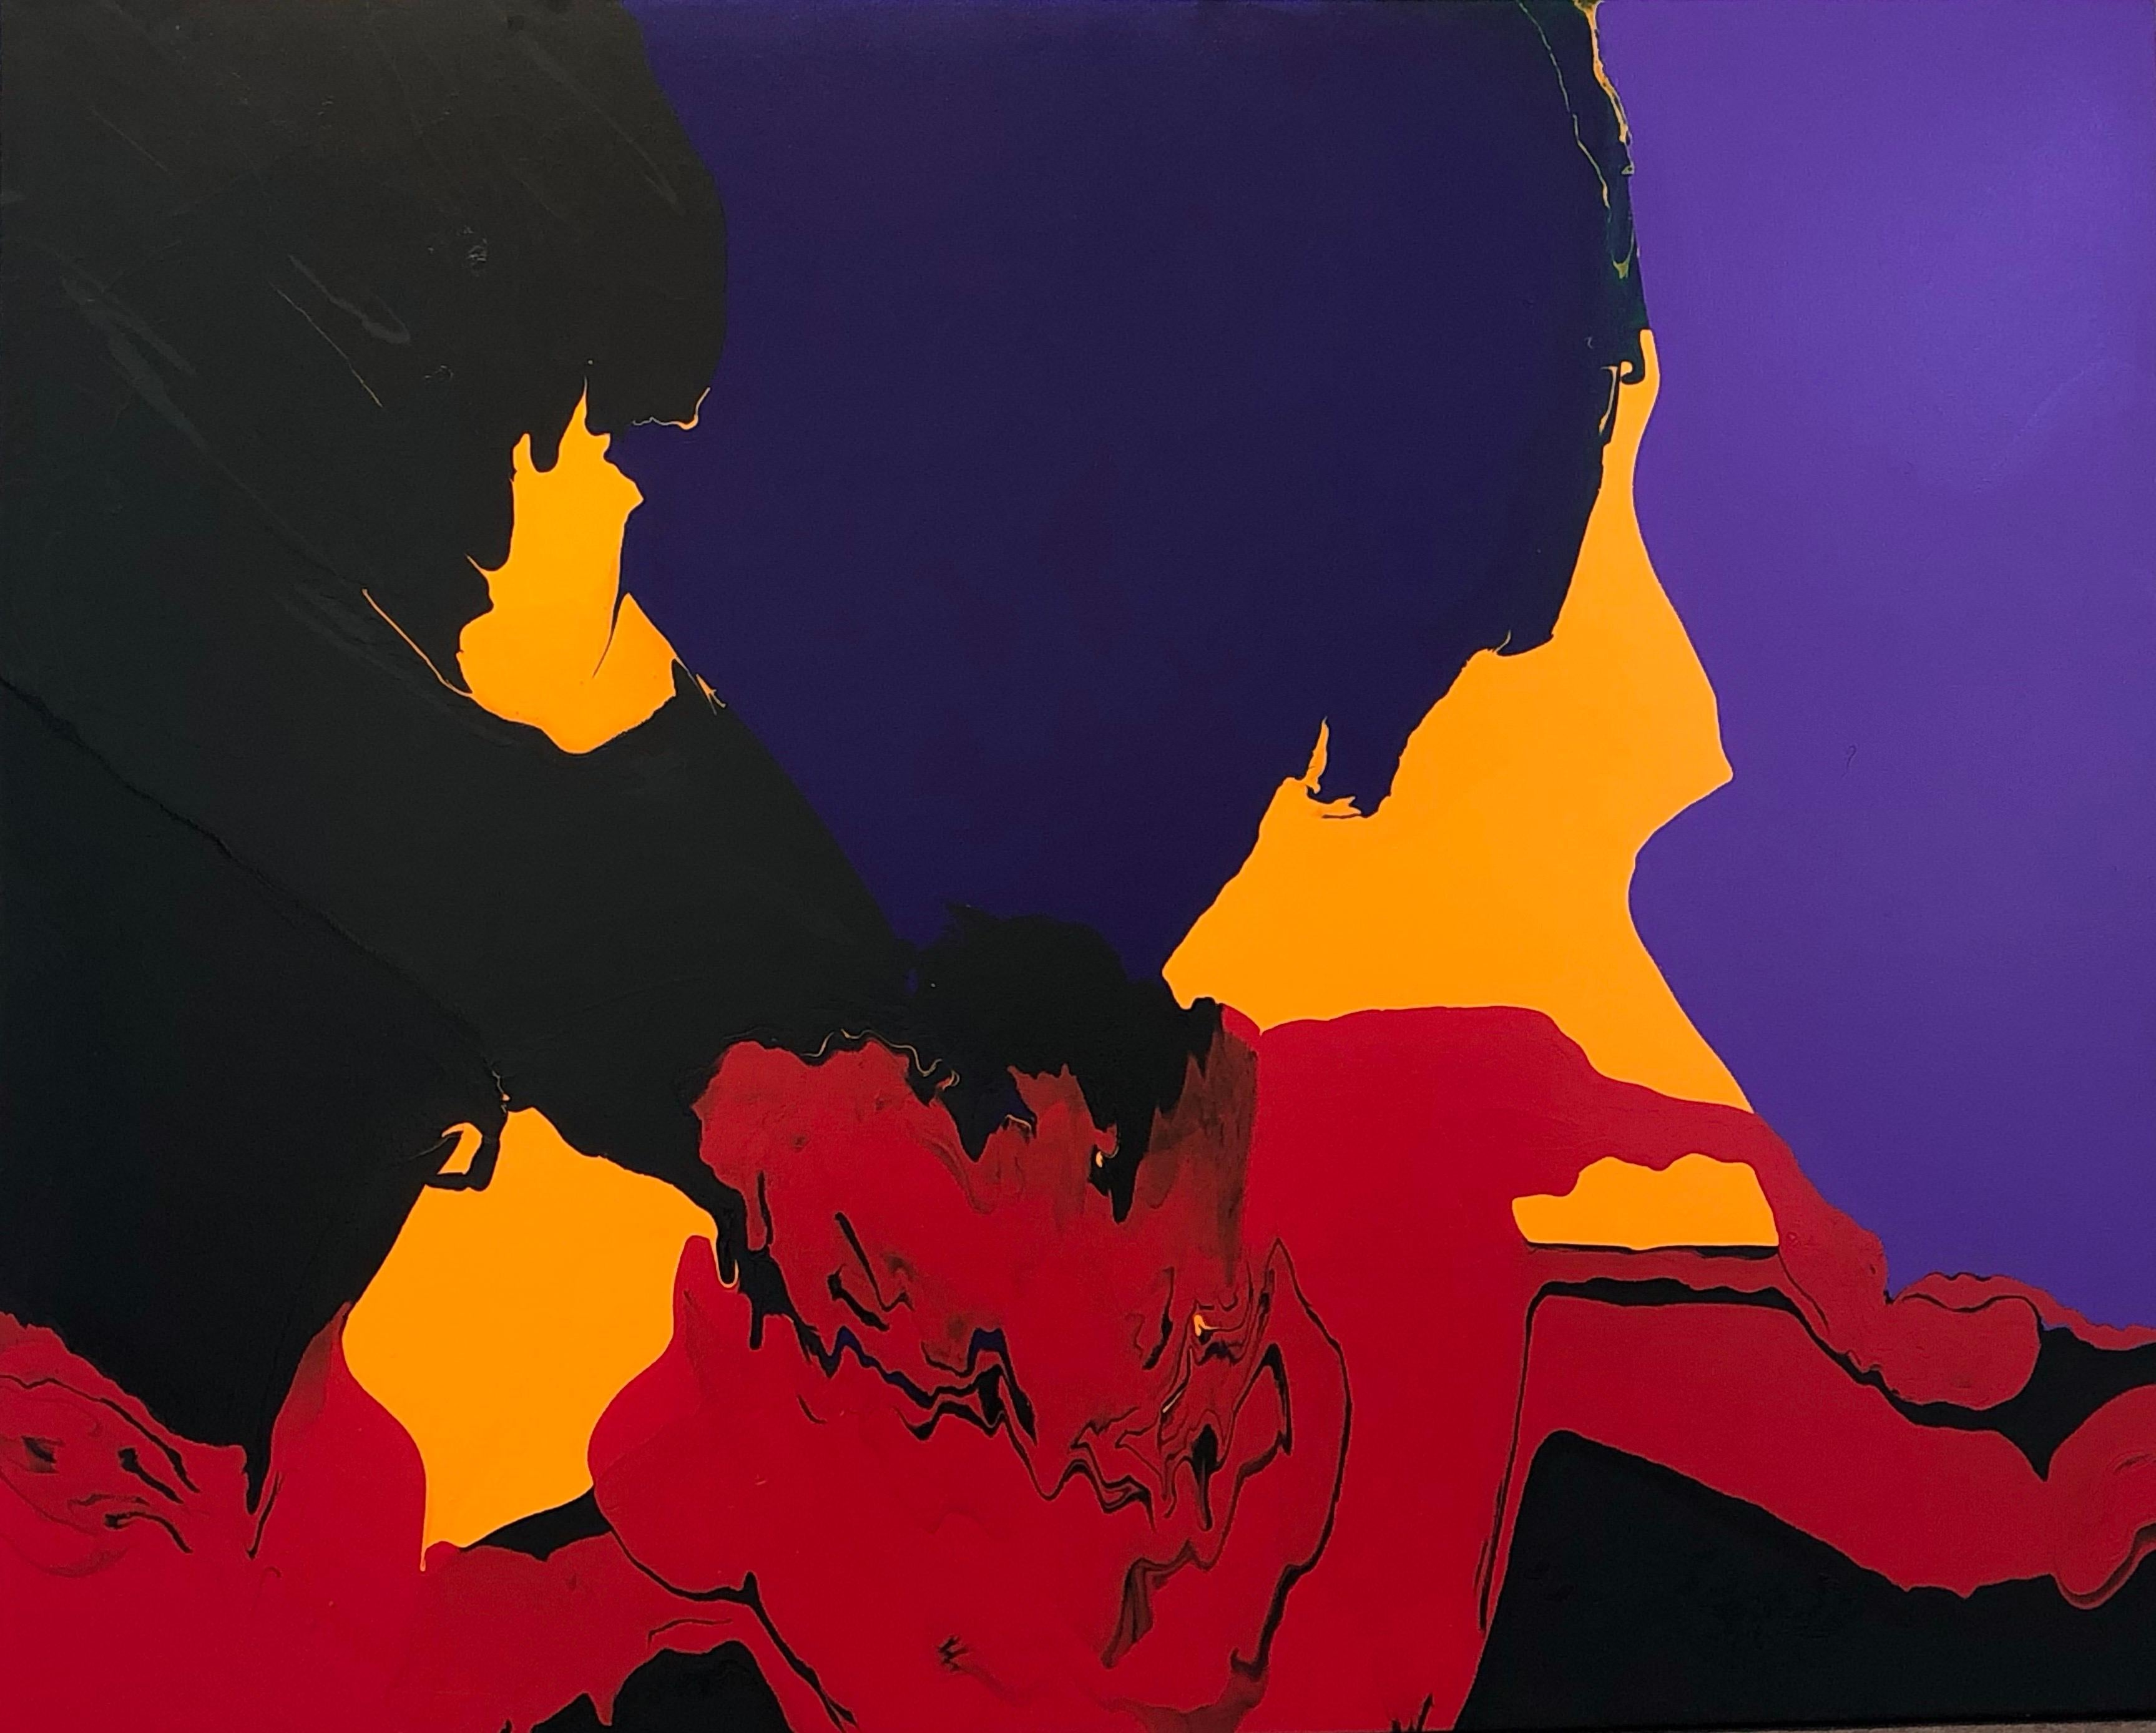 Current, abstract painting by Glenn Green, red, black, blue, yellow on canvas